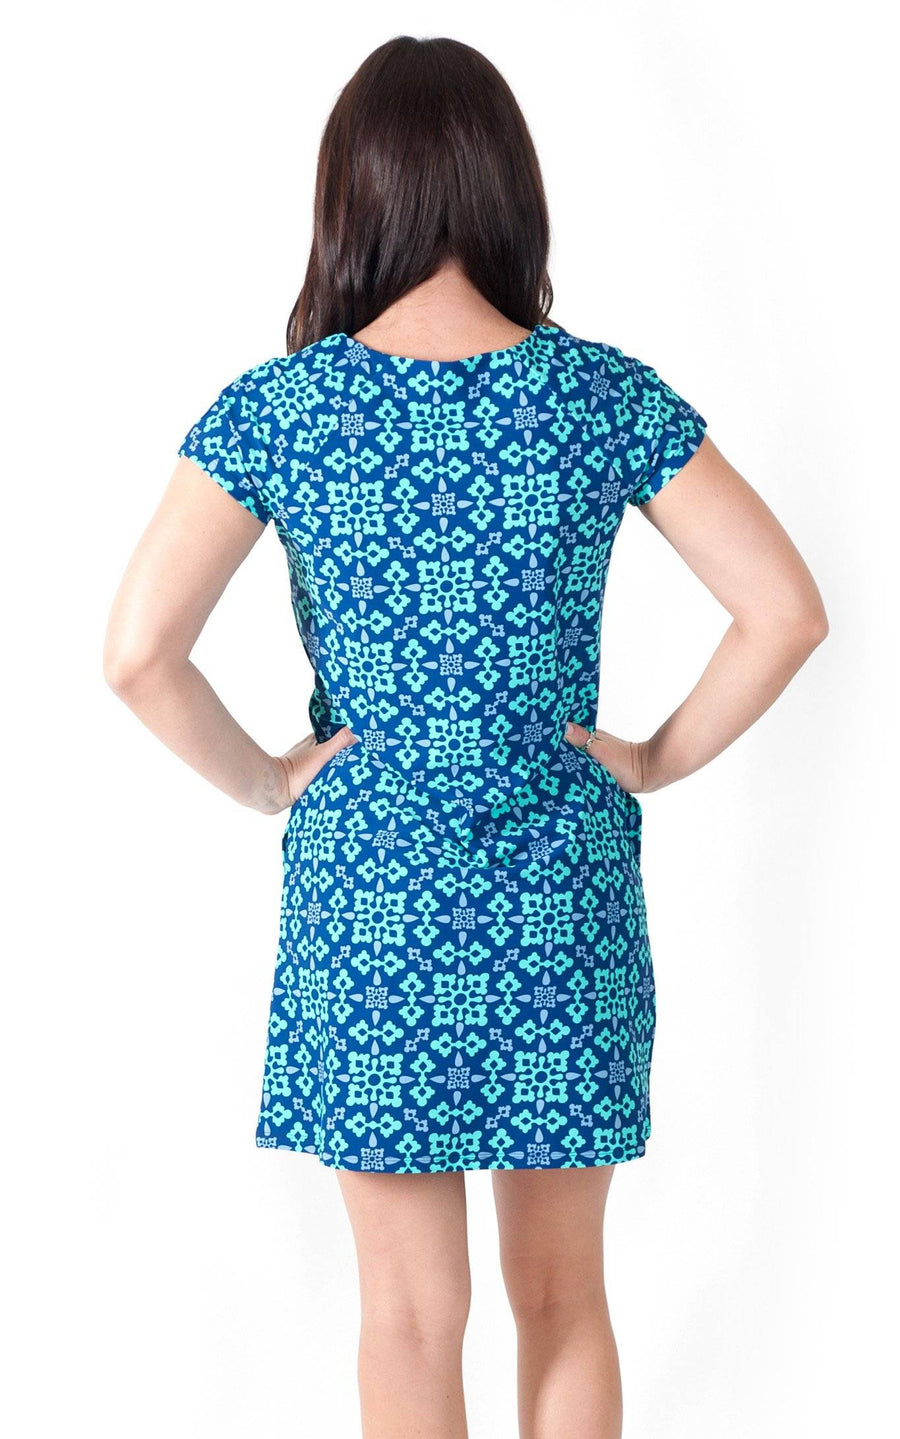 All For Color-Autumn Sky Harbor Place Cap Sleeve Dress - FINAL SALE-Dresses